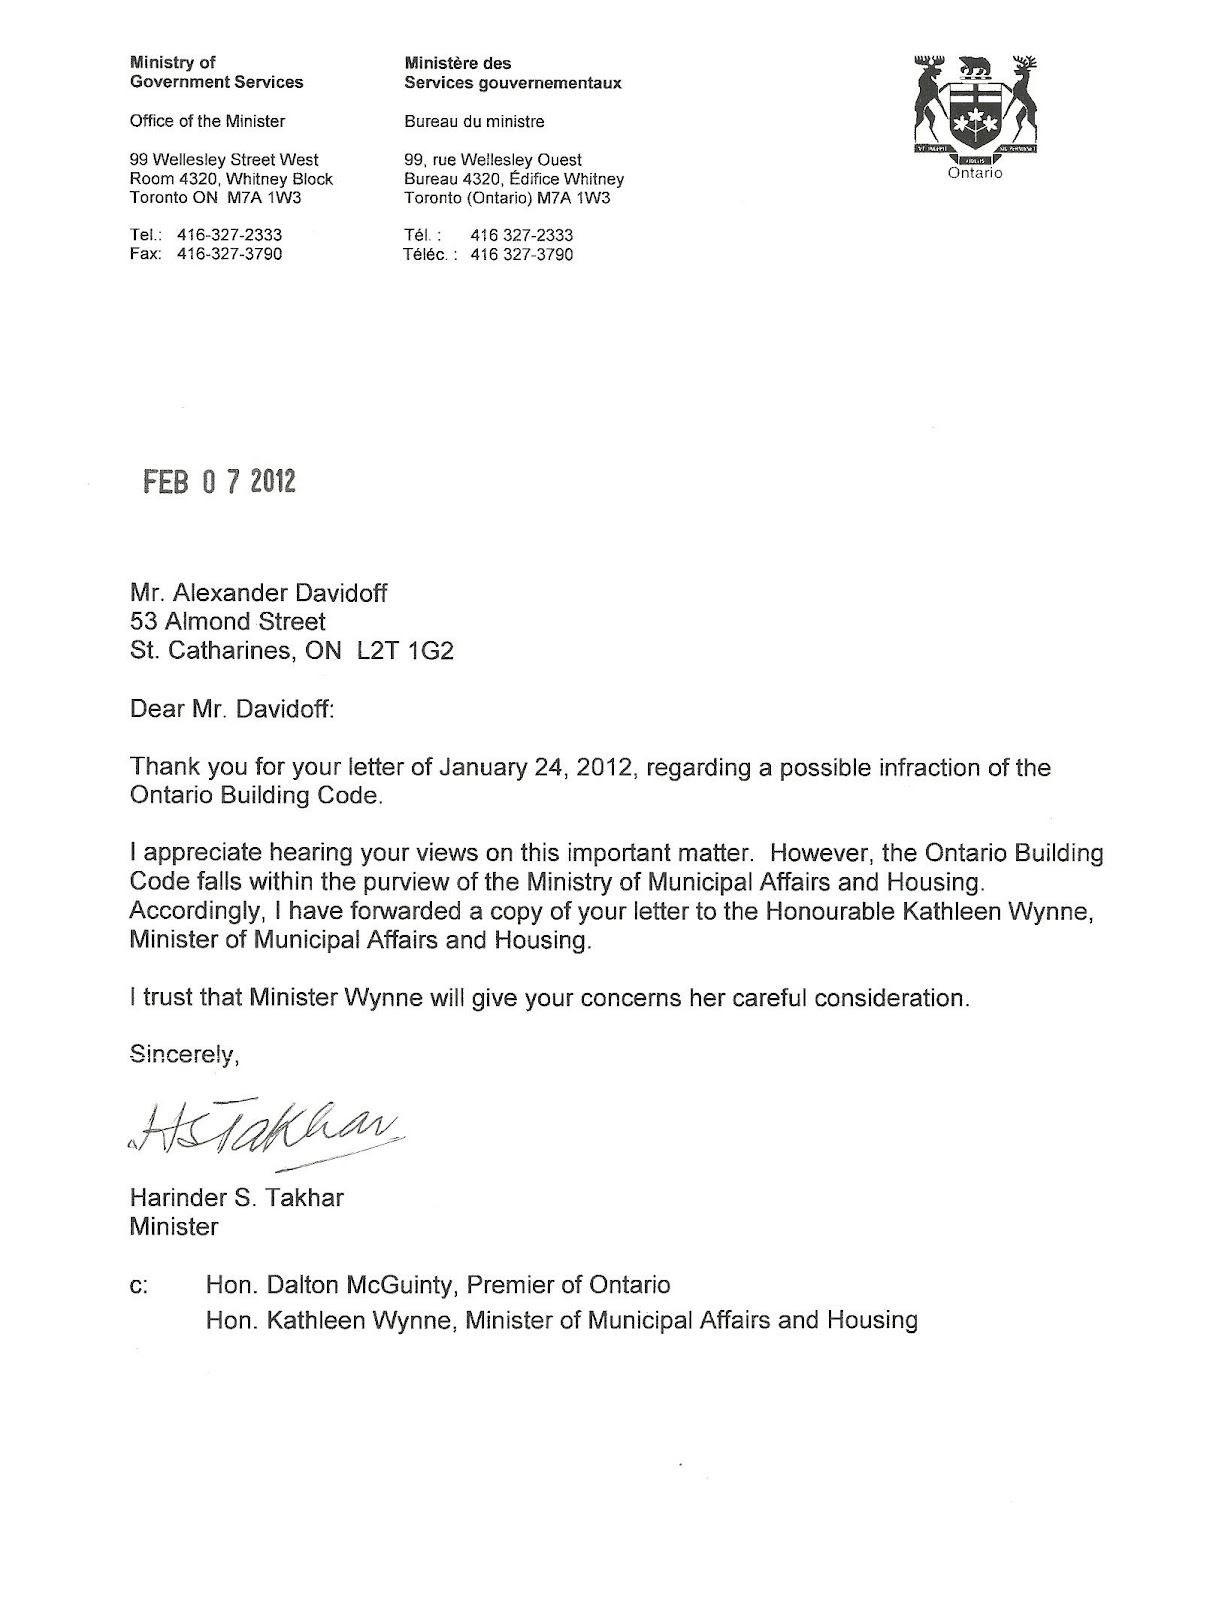 no ad lib premier dalton mcguinty ontario provincial liberal leader as a building inspector this individual resignation template letter